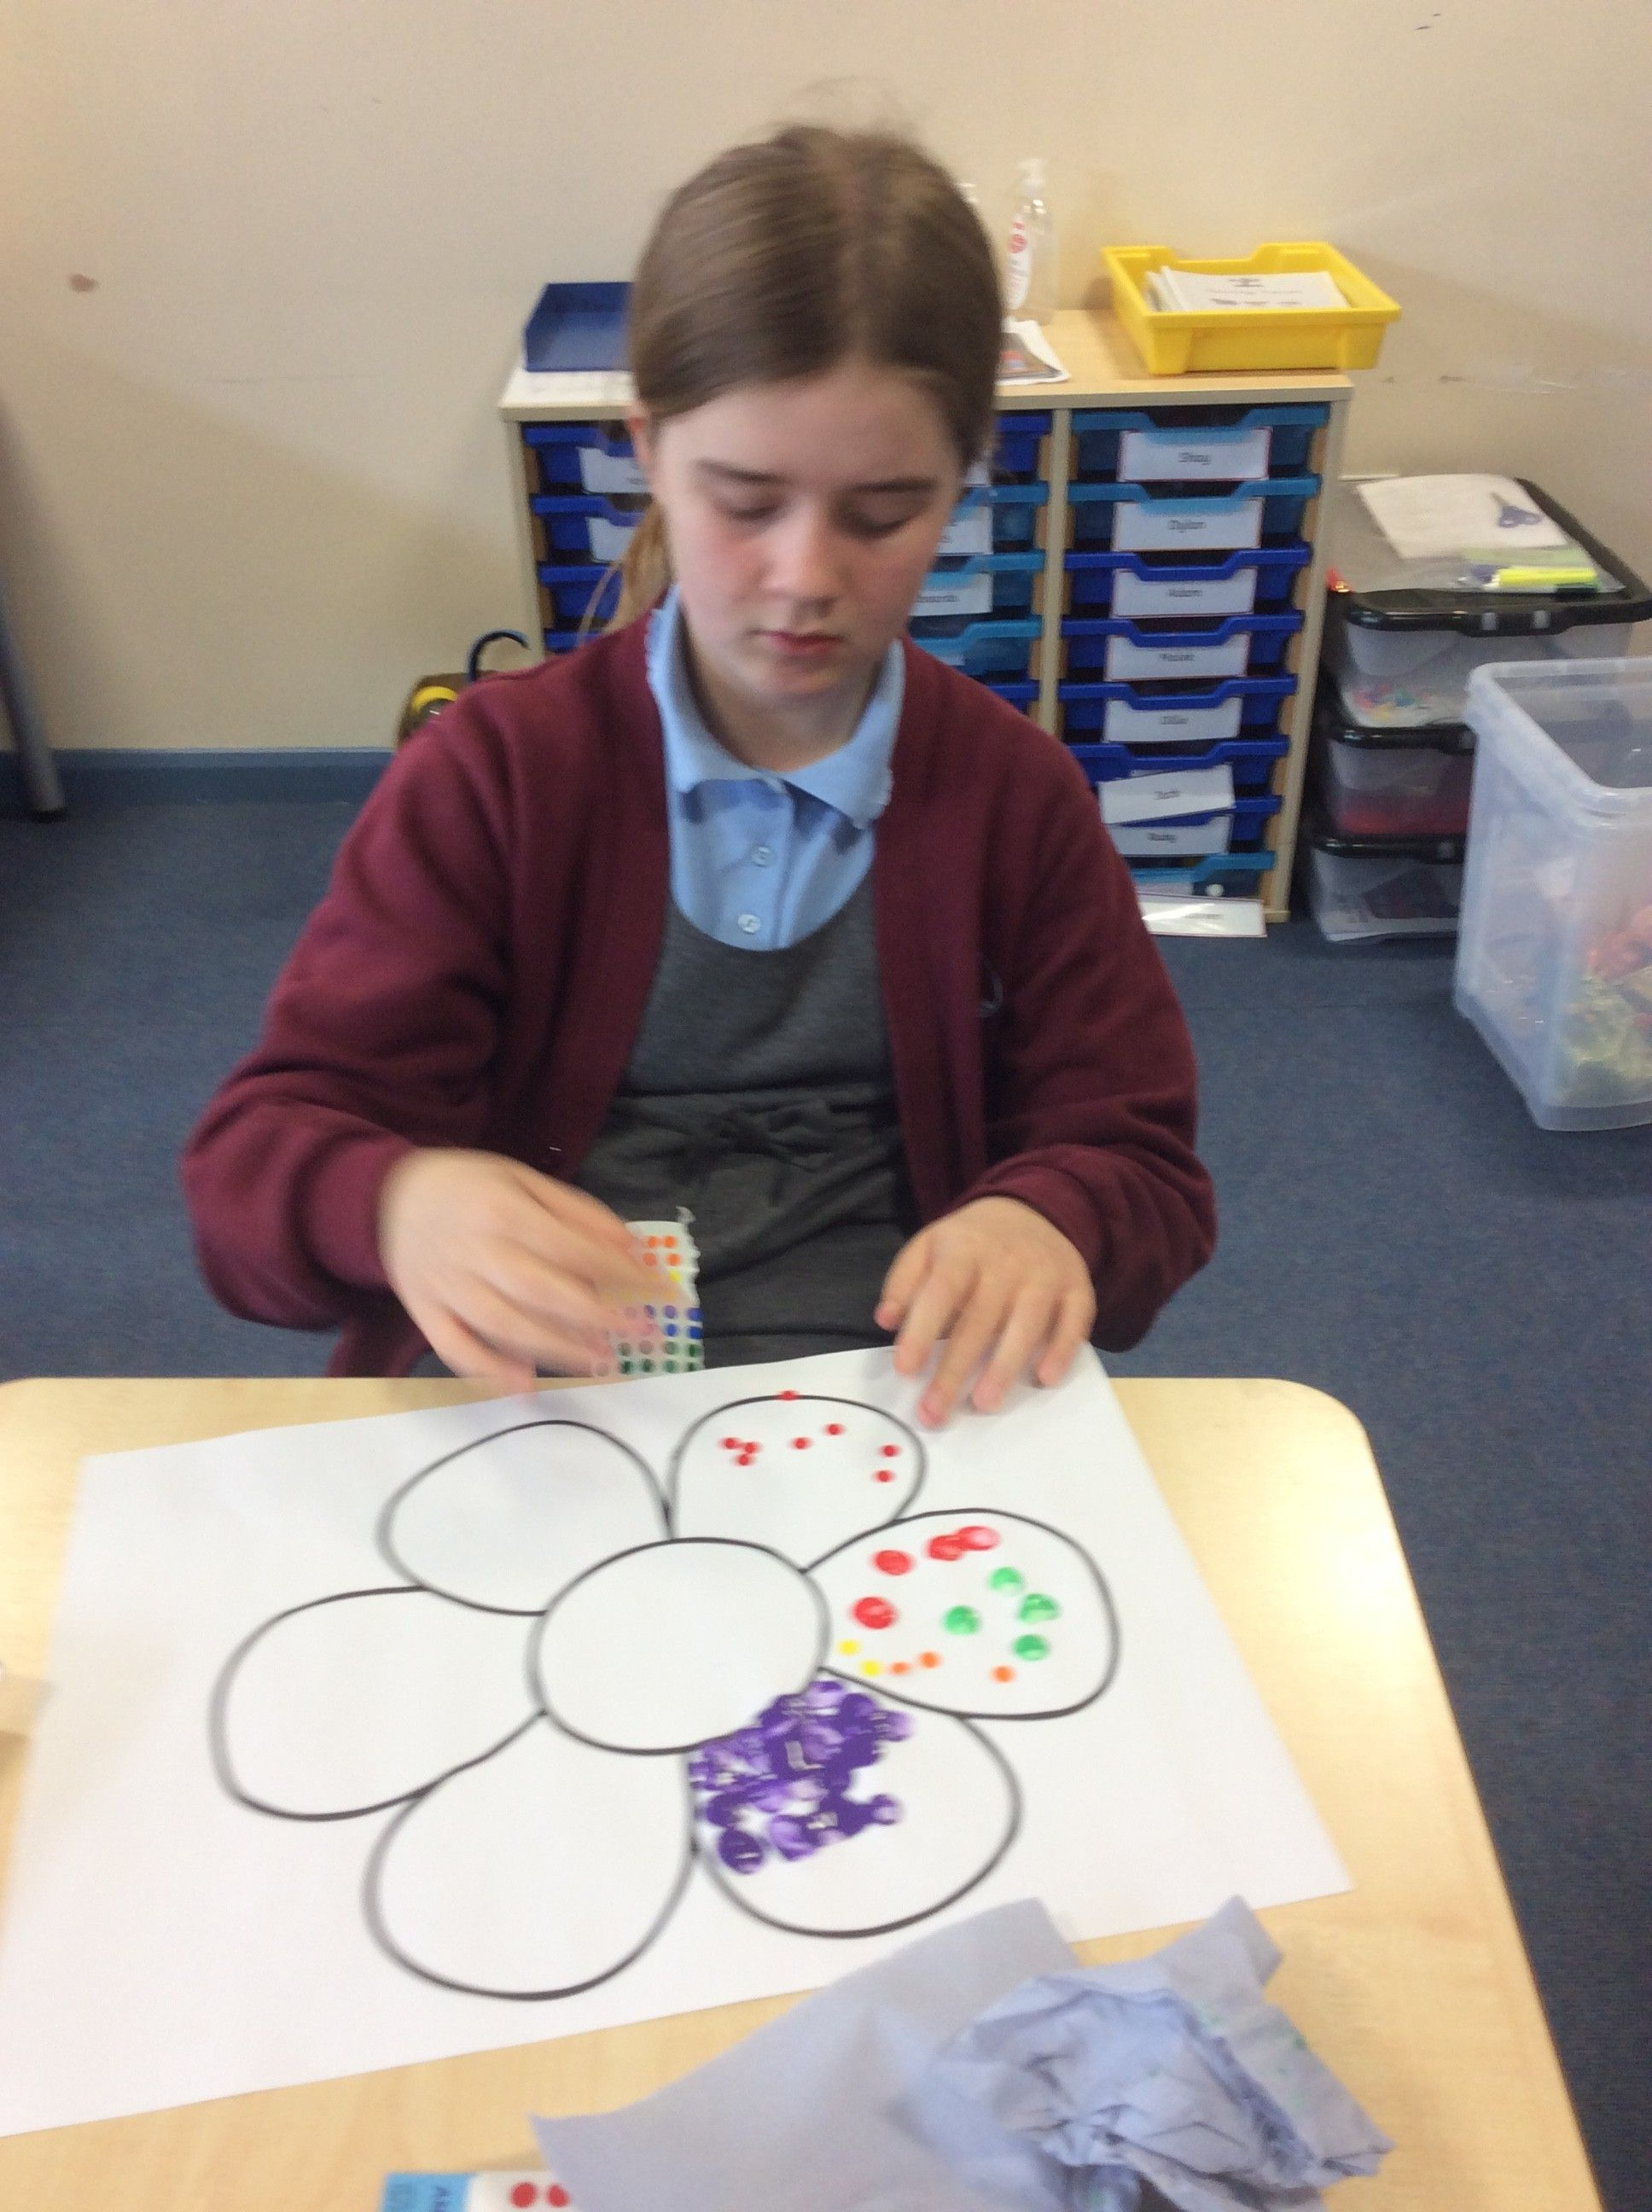 Yayoi Kusama inspired dot paintings